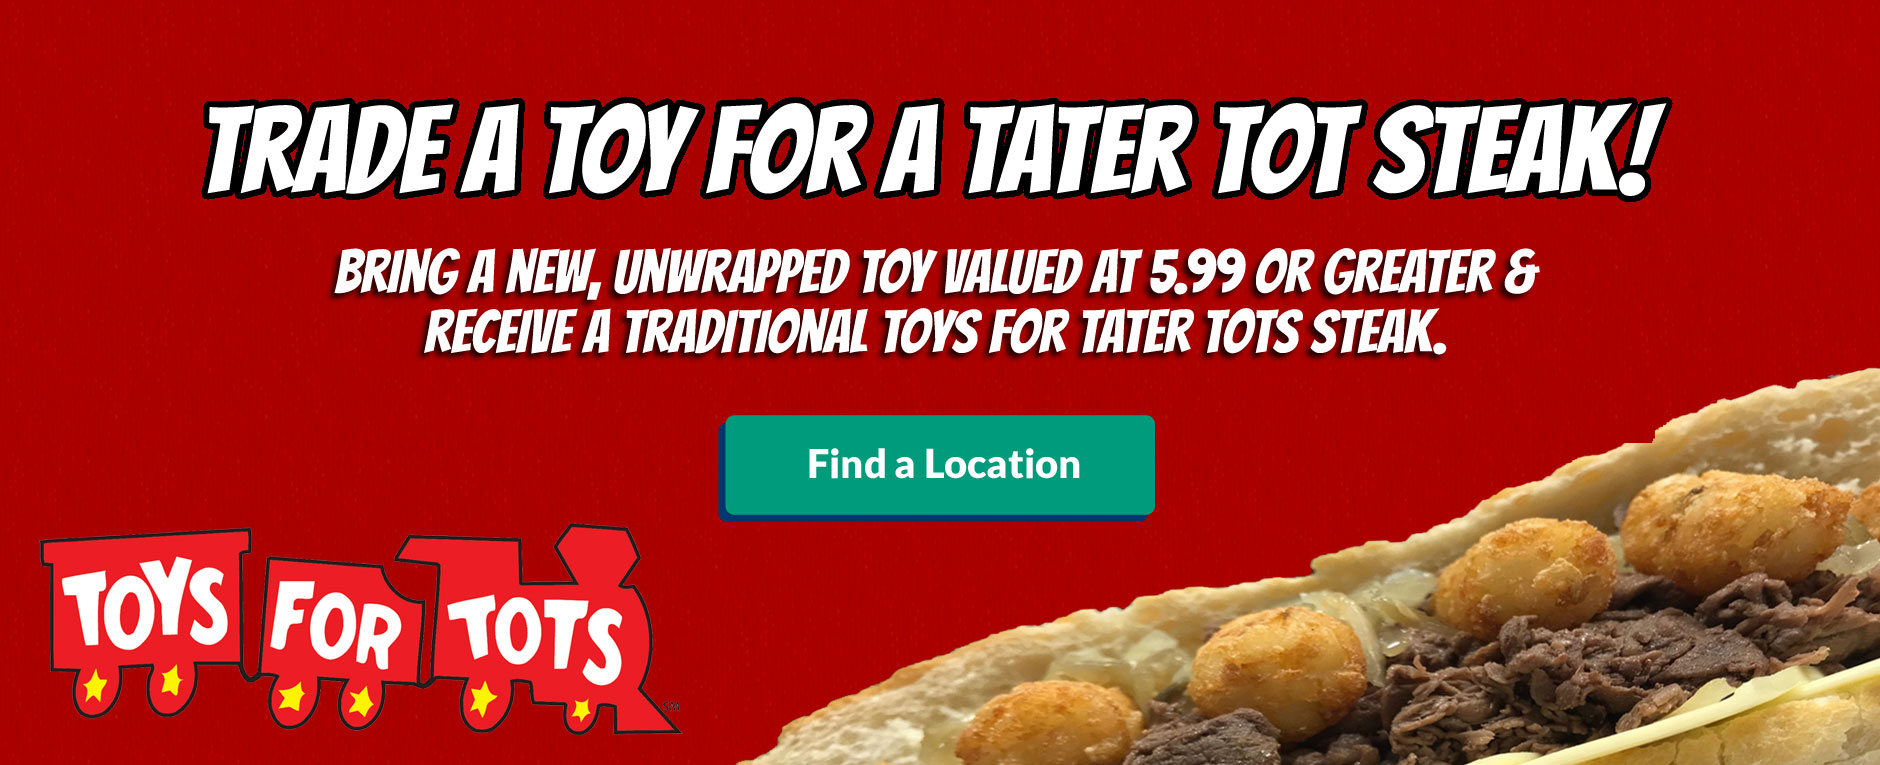 toys-for-tator-tots